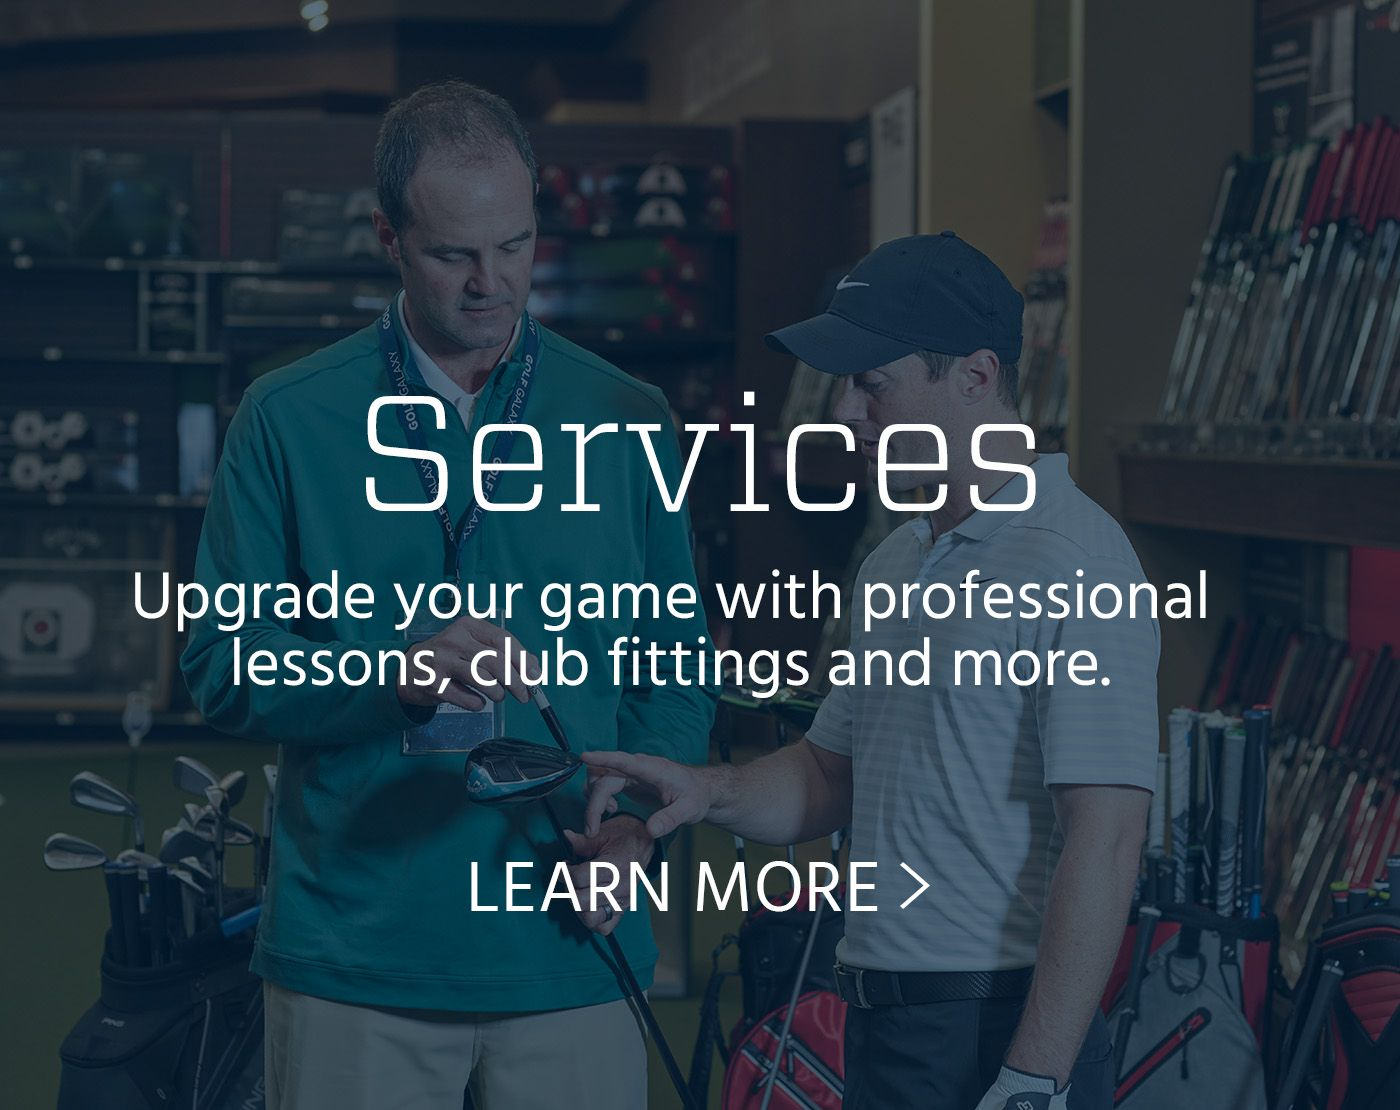 Upgrade your game with professional lessons, clubfittings and more